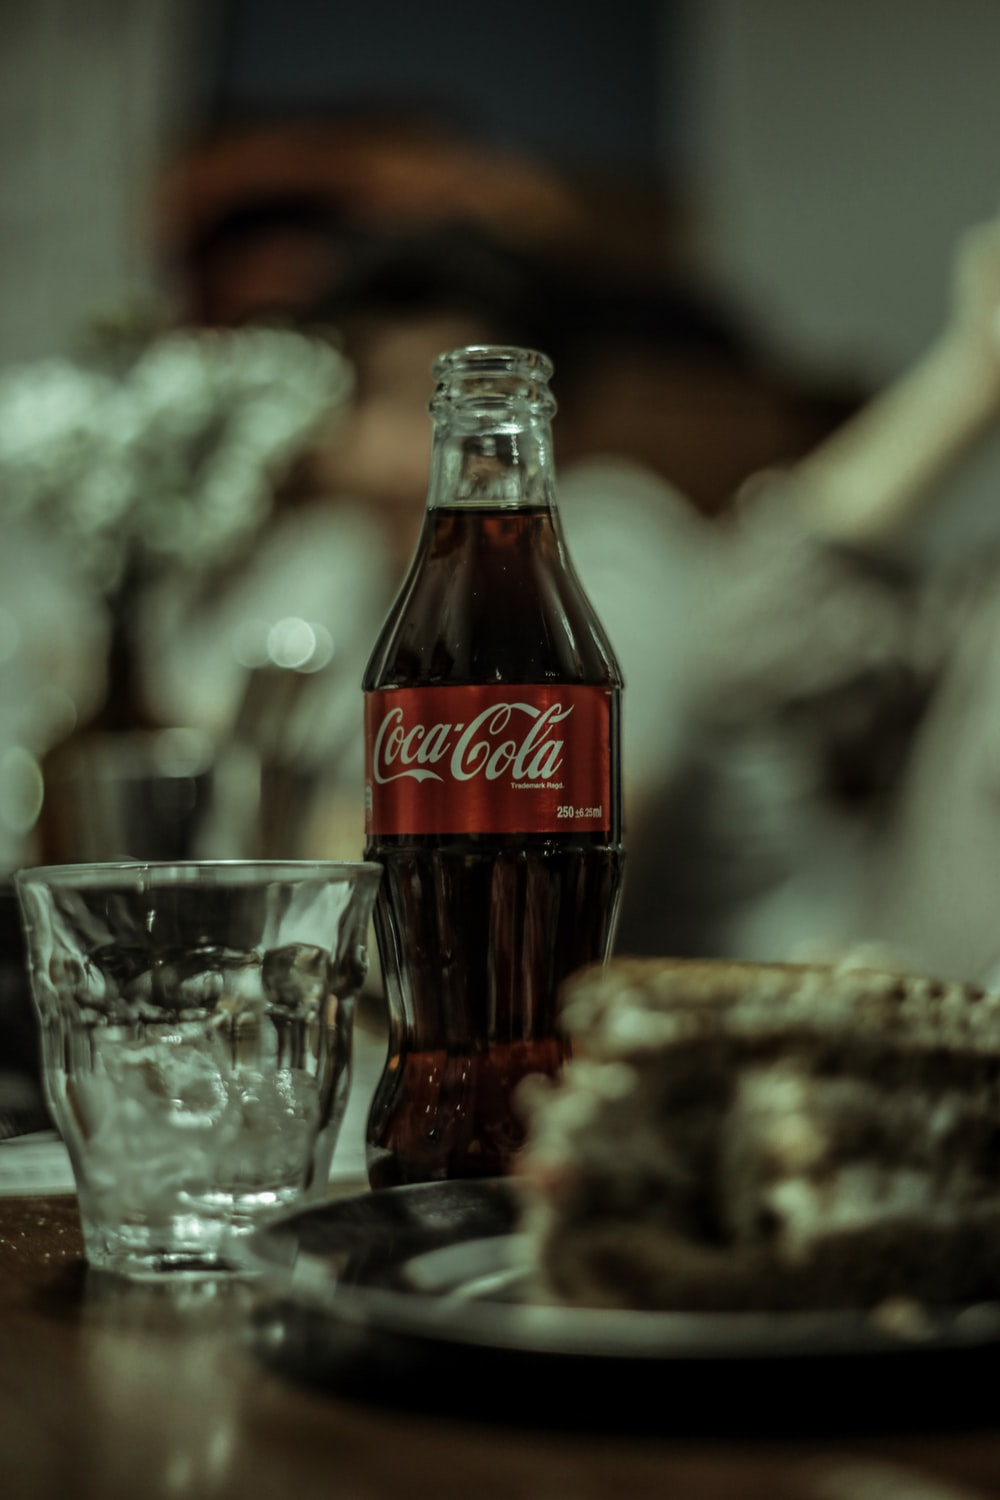 coca cola bottle beside drinking glass